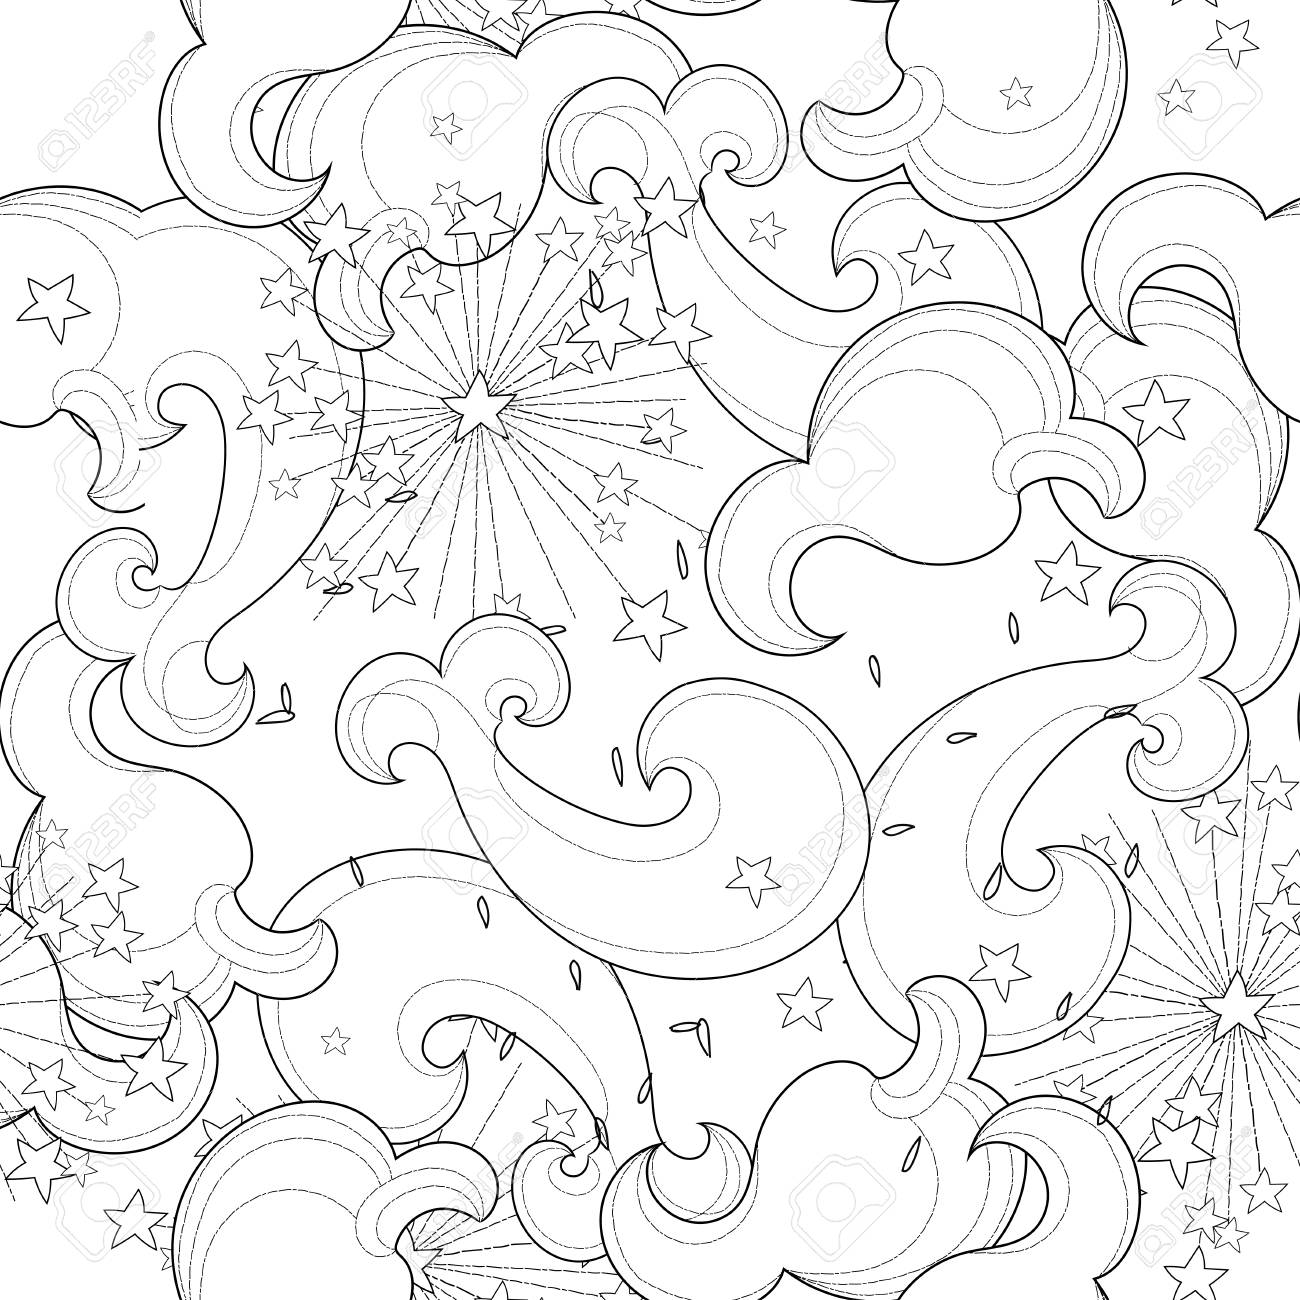 Dessin Dessine A La Main N Ud Nuage Seamless Pattern Vector Zen Art